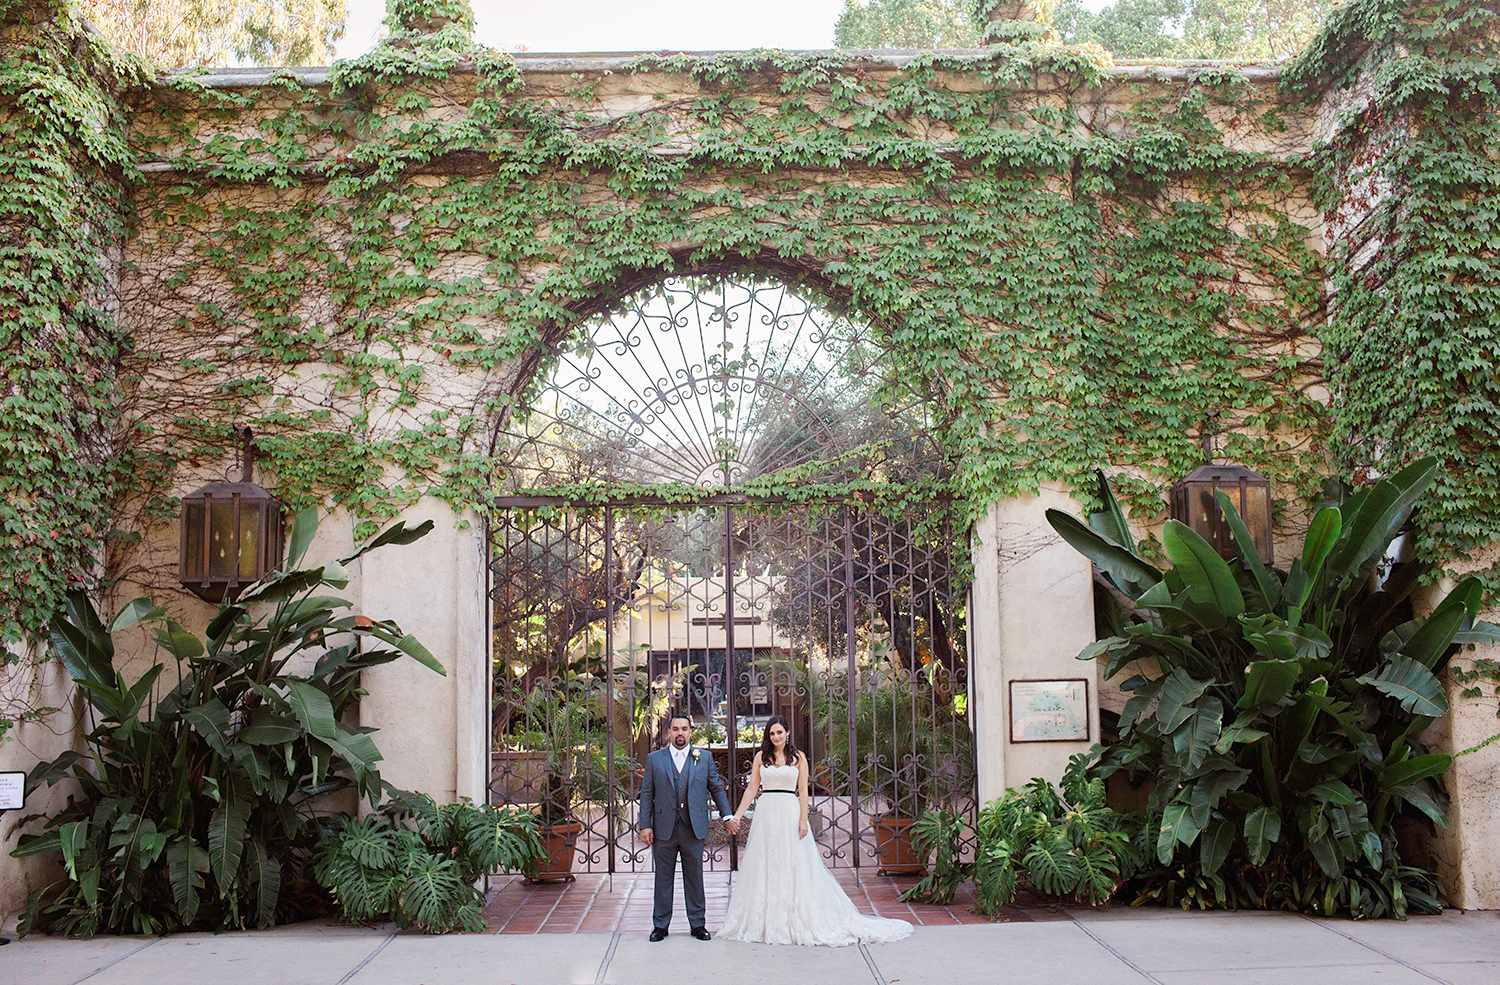 casey-brodley-los-angeles-wedding-photographer-sm.jpg